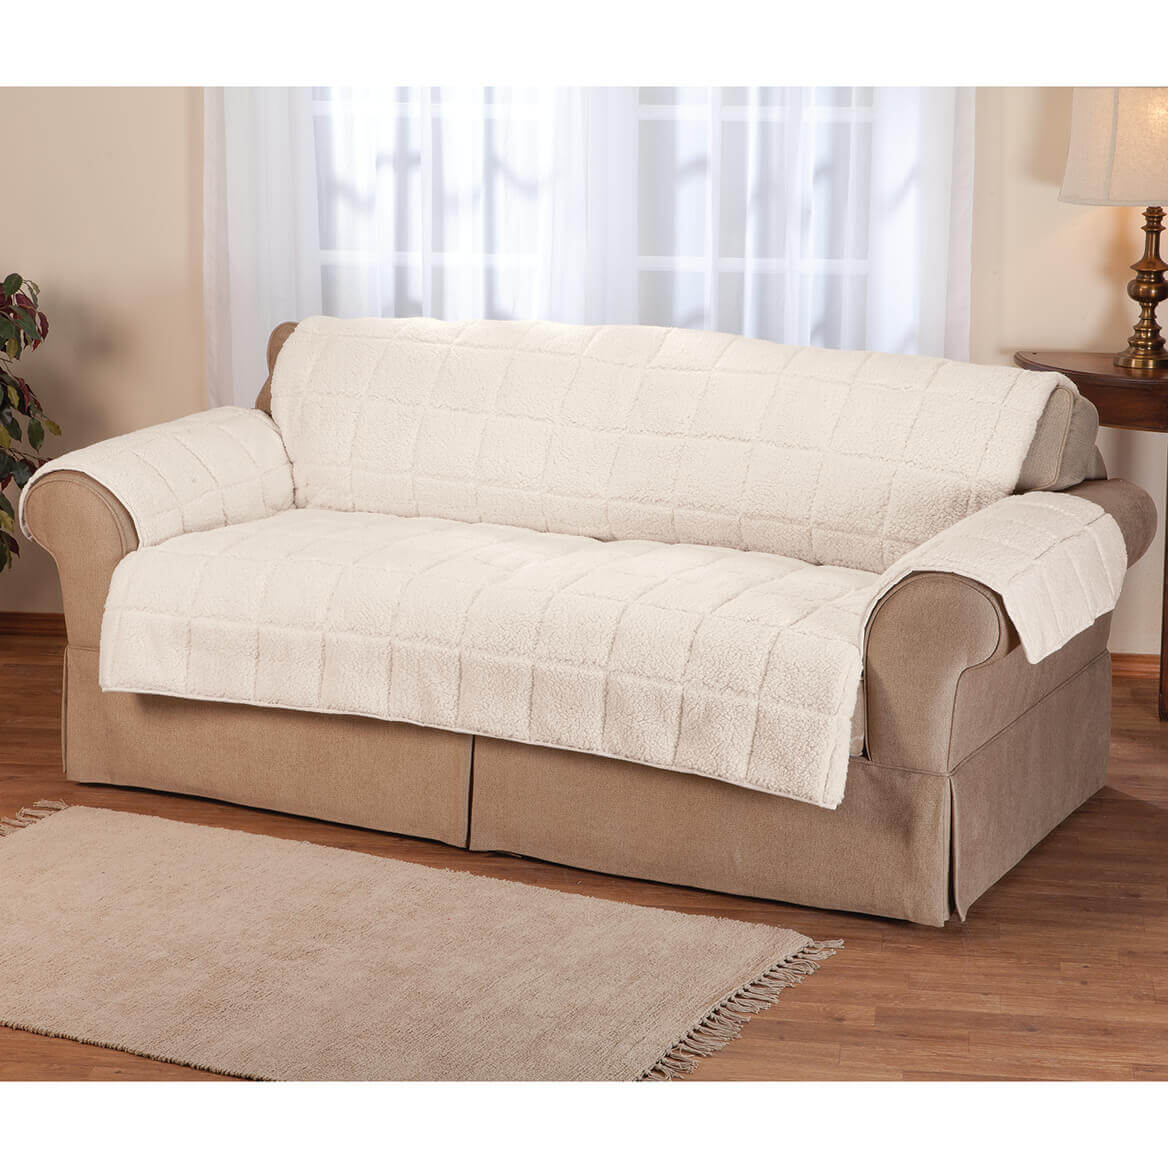 waterproof sofa protector build your own table sherpa by oakridge walter drake